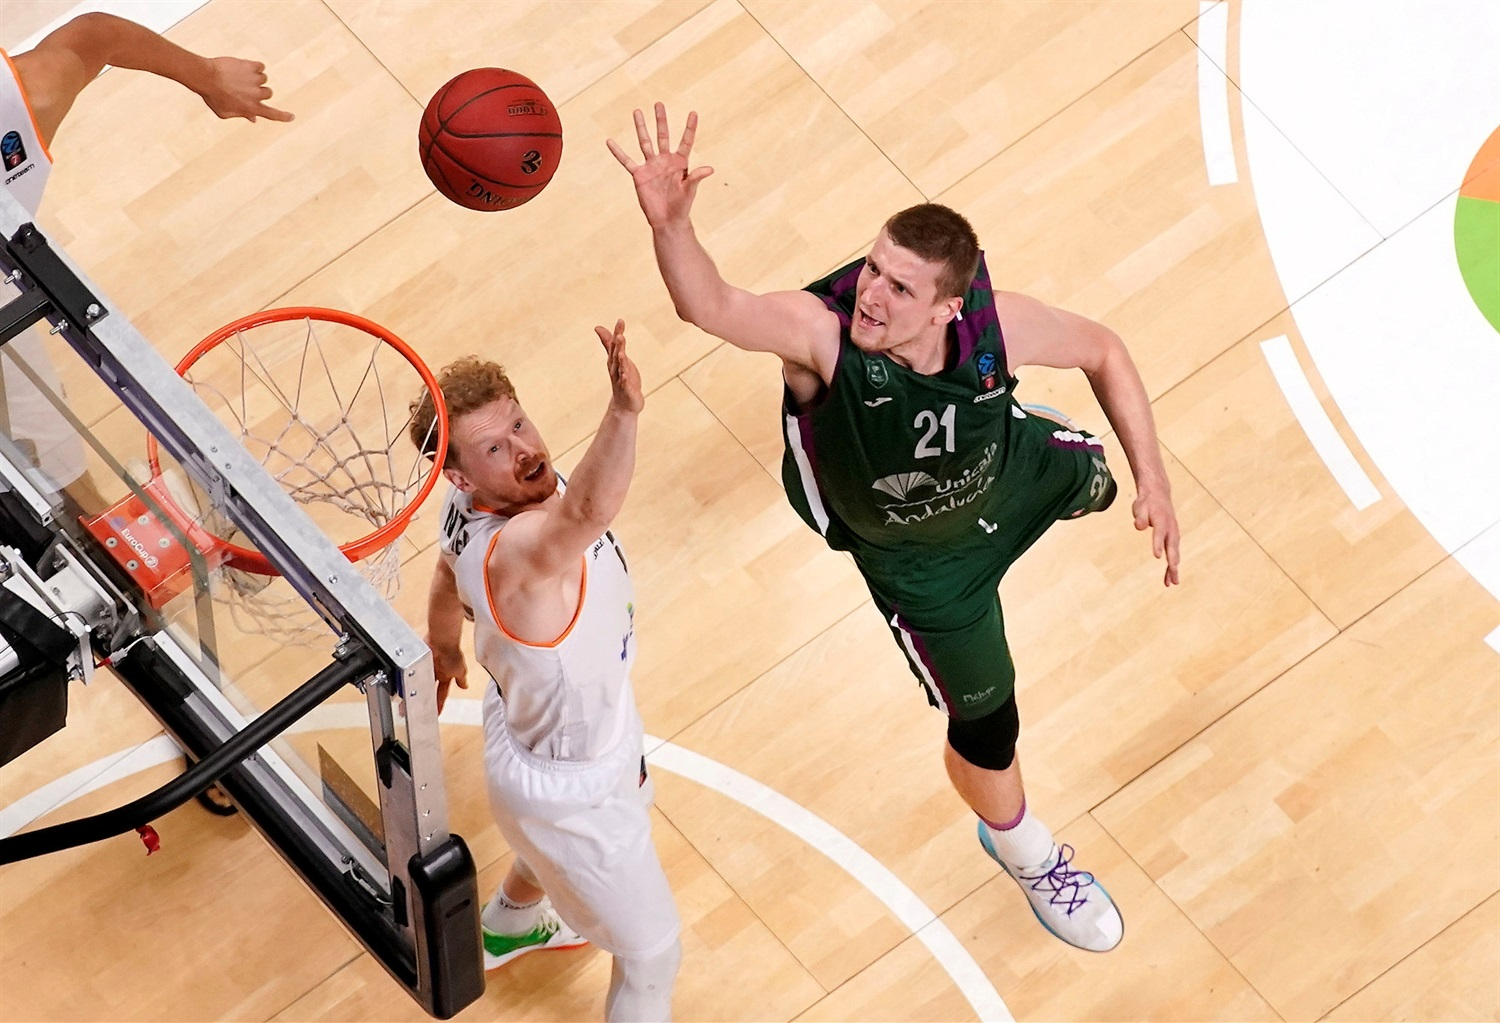 Adam Waczynski - Unicaja Malaga (photo Unicaja - Mariano Pozo) - EC20